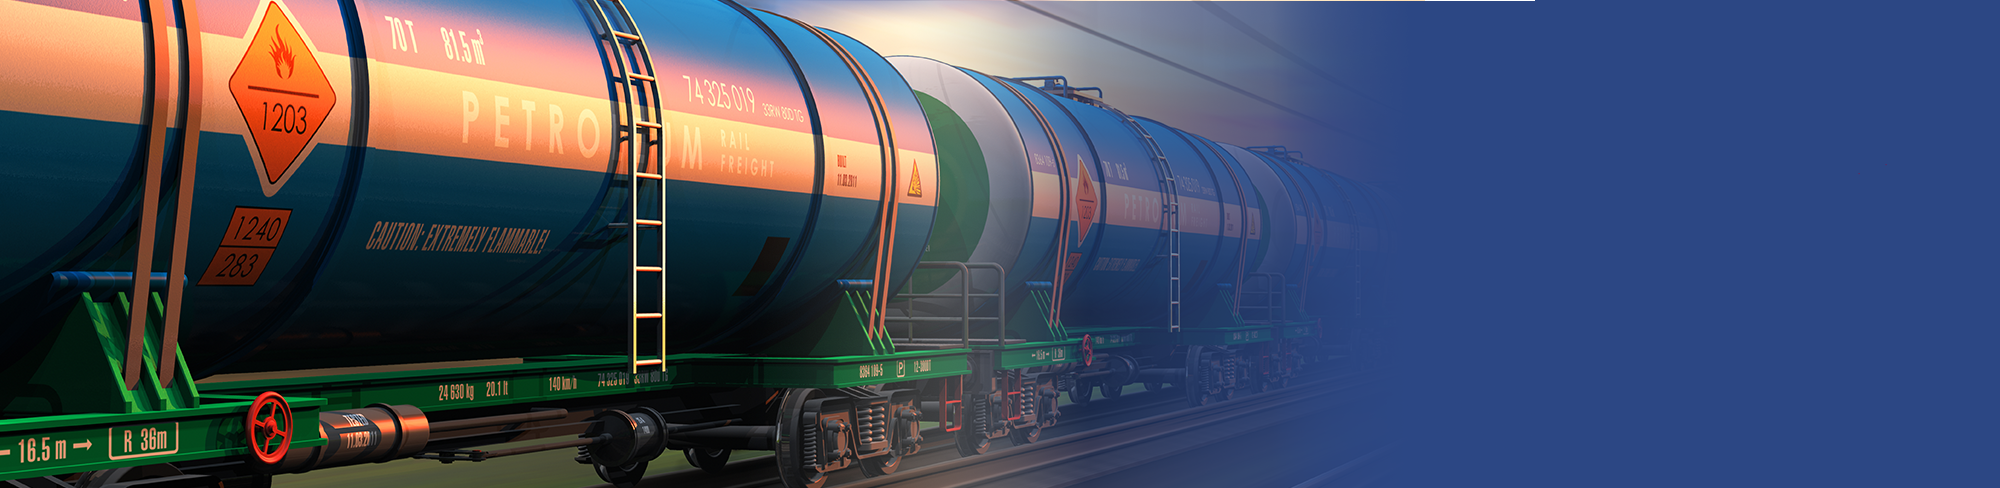 Crude-oil-by-rail header.png